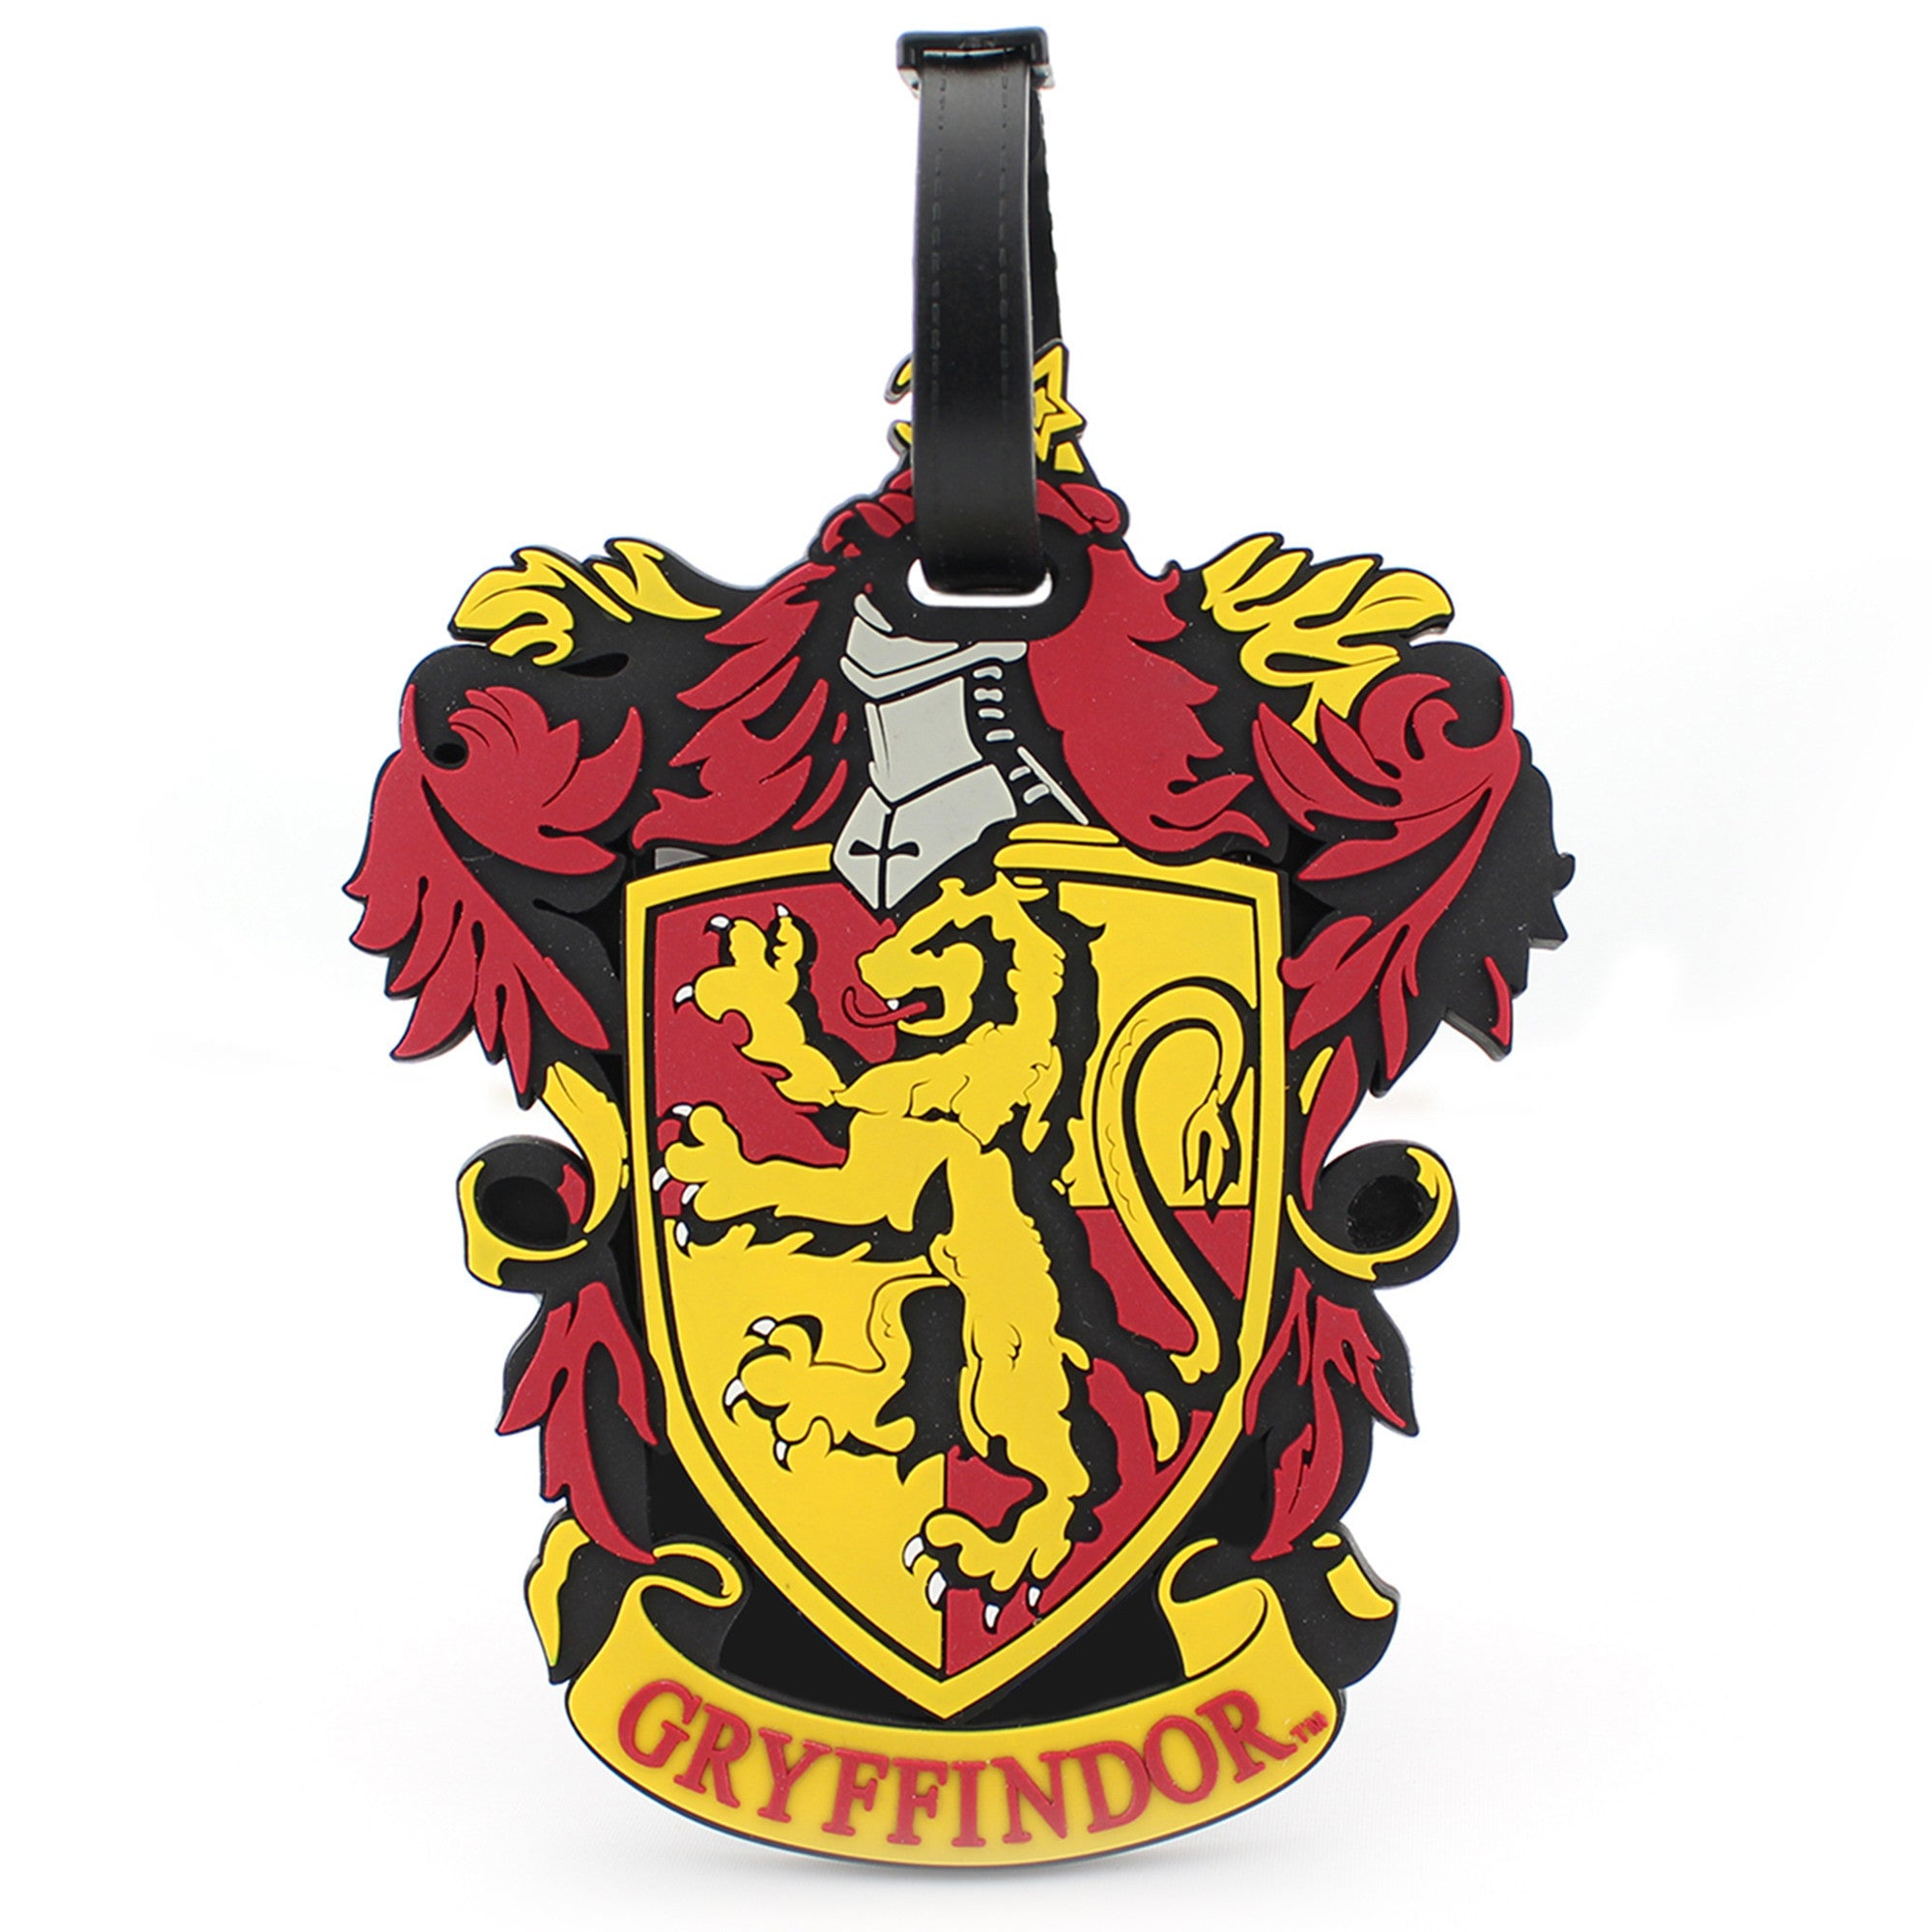 Porte tiquette blason harry potter gryffondor cinereplicas cinereplicas france - Harry potter blason ...